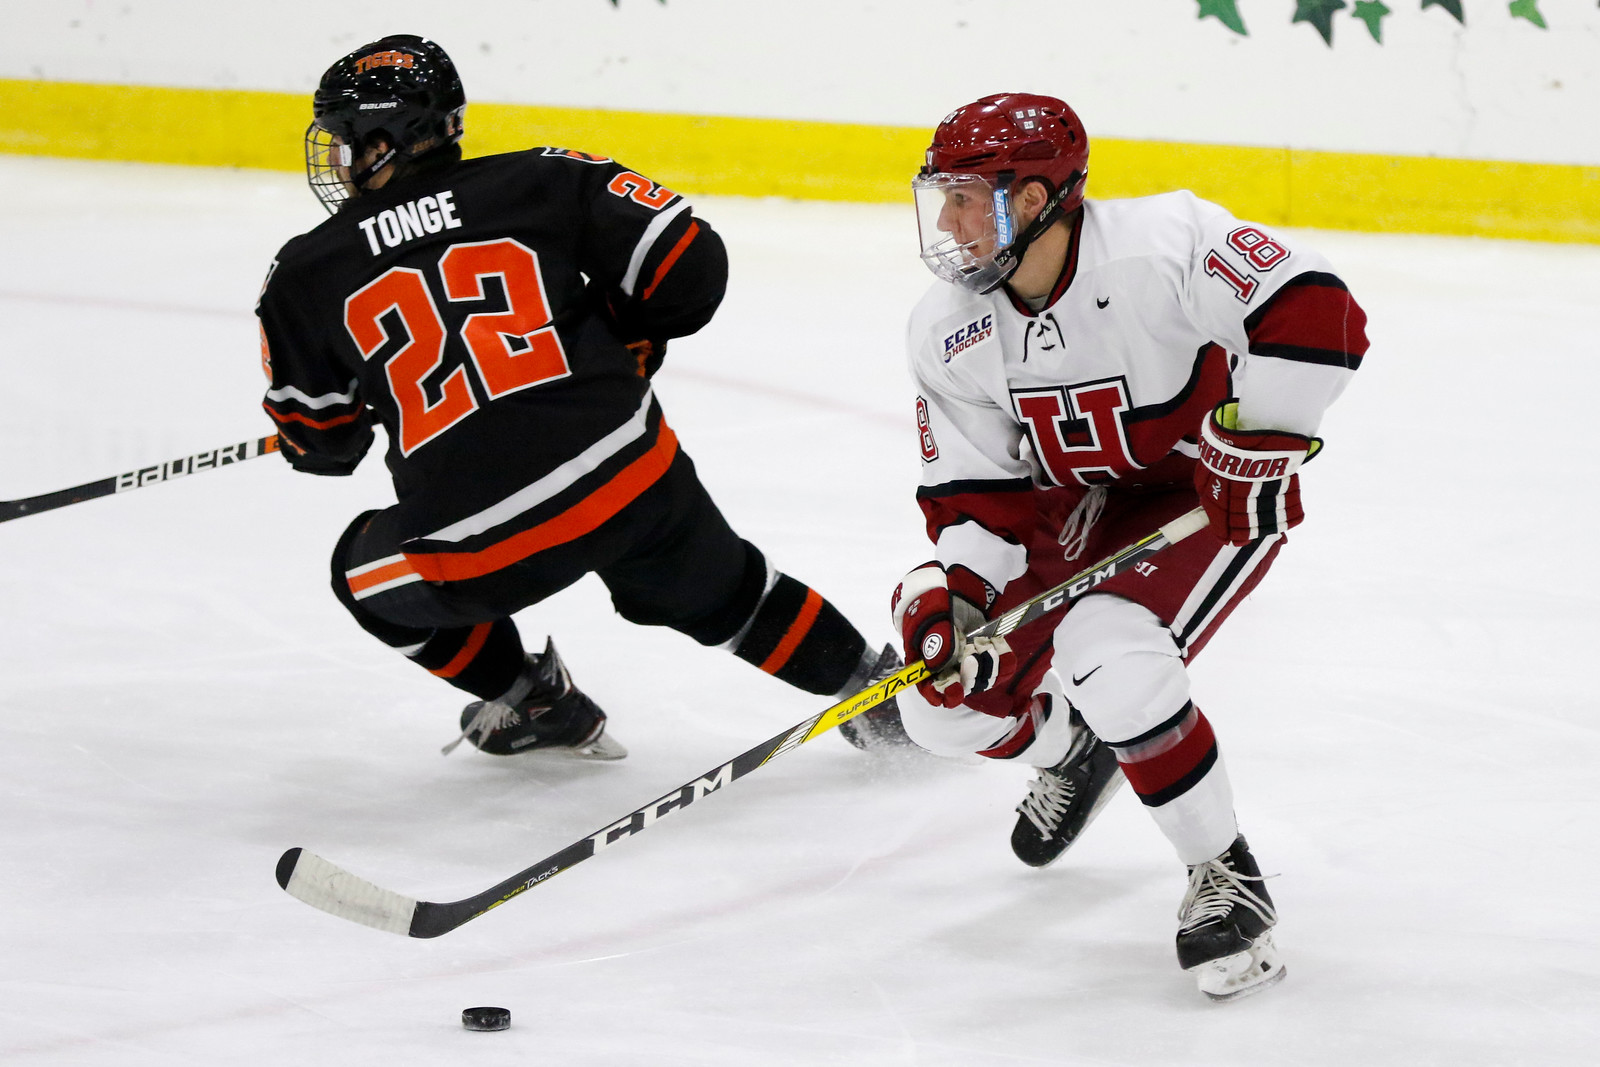 Fox's expert puck-moving and nifty stick skills separated him from most of the competition during his time in the ECAC.